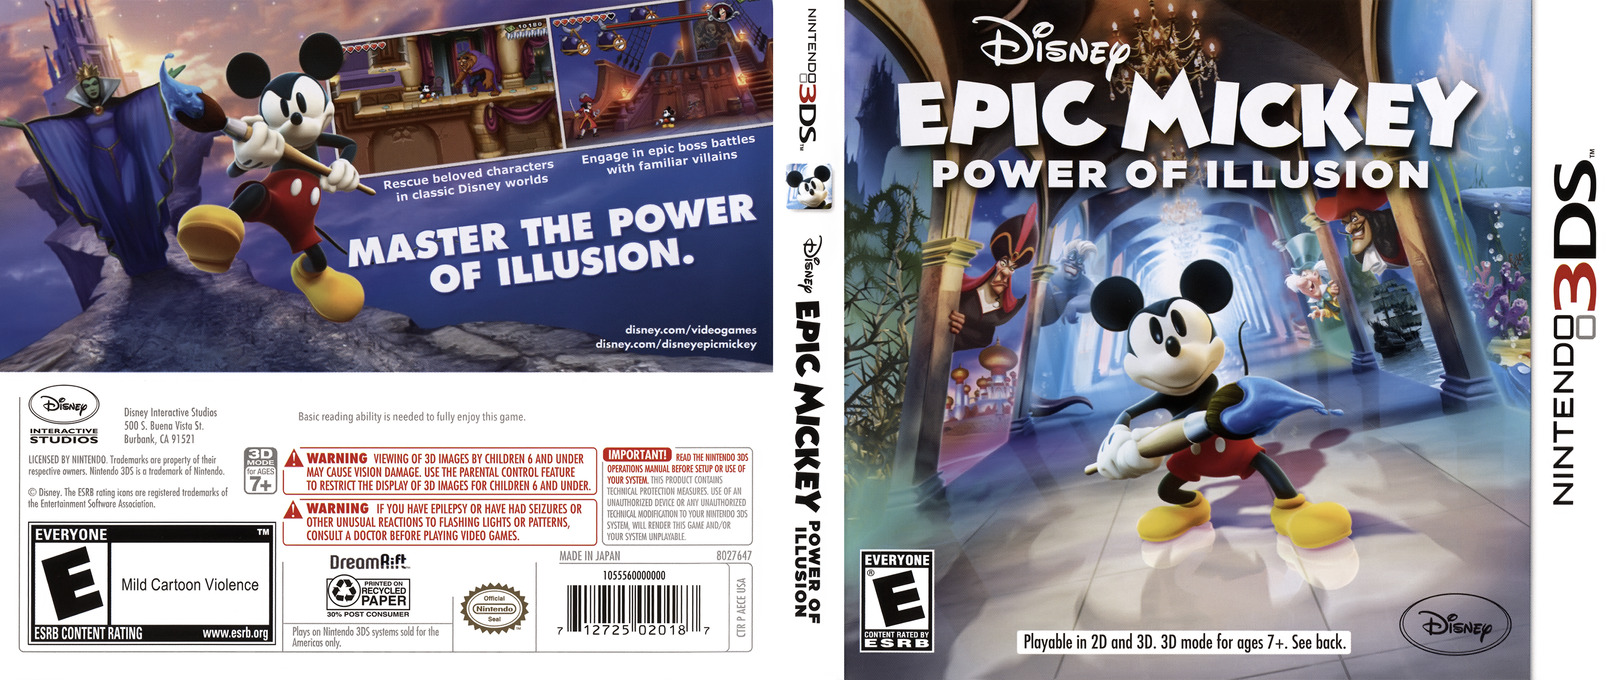 Disney Epic Mickey - Power of Illusion 3DS coverfullHQ (AECE)